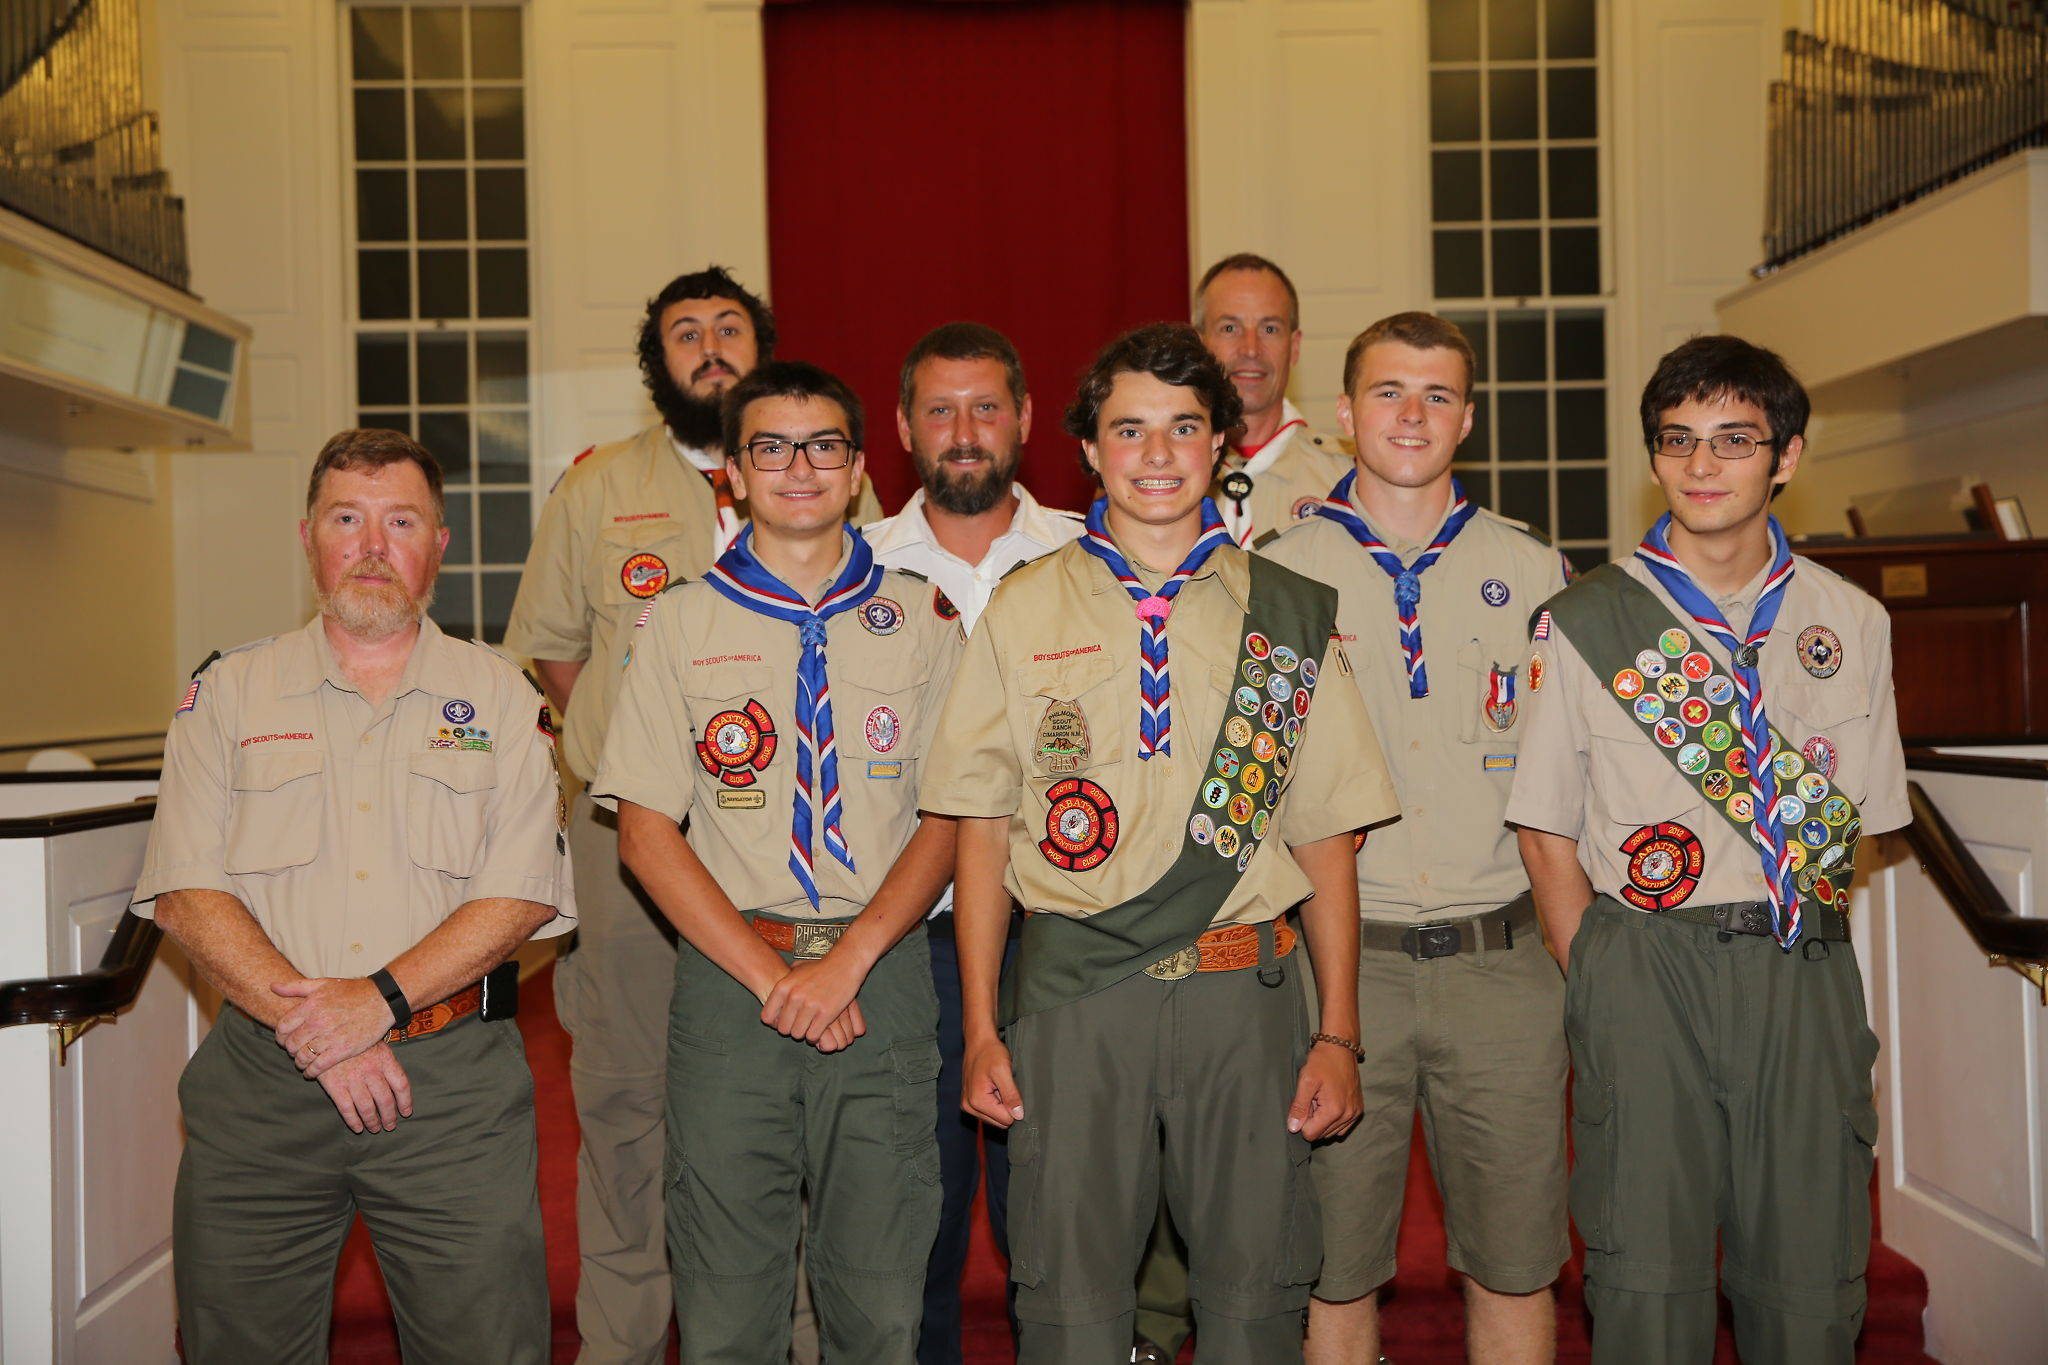 608e0add761c0ab035d5_Ian_Gordon_with_Troop_104_Eagles.jpg